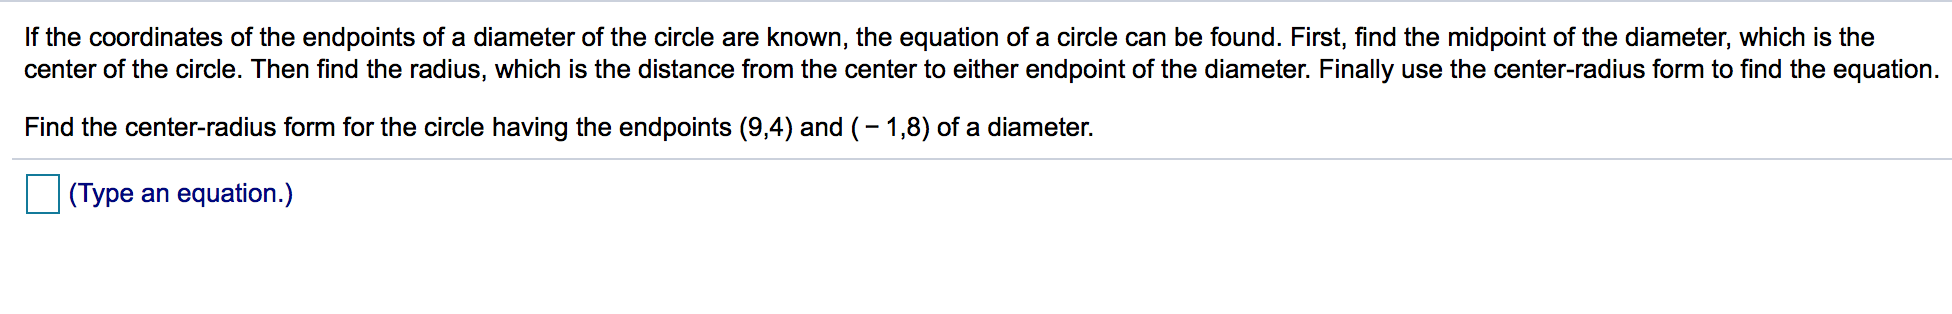 If the coordinates of the endpoints of a diameter of the circle are known, the equation of a circle can be found. First, find the midpoint of the diameter, which is the center of the circle. Then find the radius, which is the distance from the center to either endpoint of the diameter. Finally use the center-radius form to find the equation. Find the center-radius form for the circle having the endpoints (9,4) and (-1,8) of a diameter. (Type an equation.)